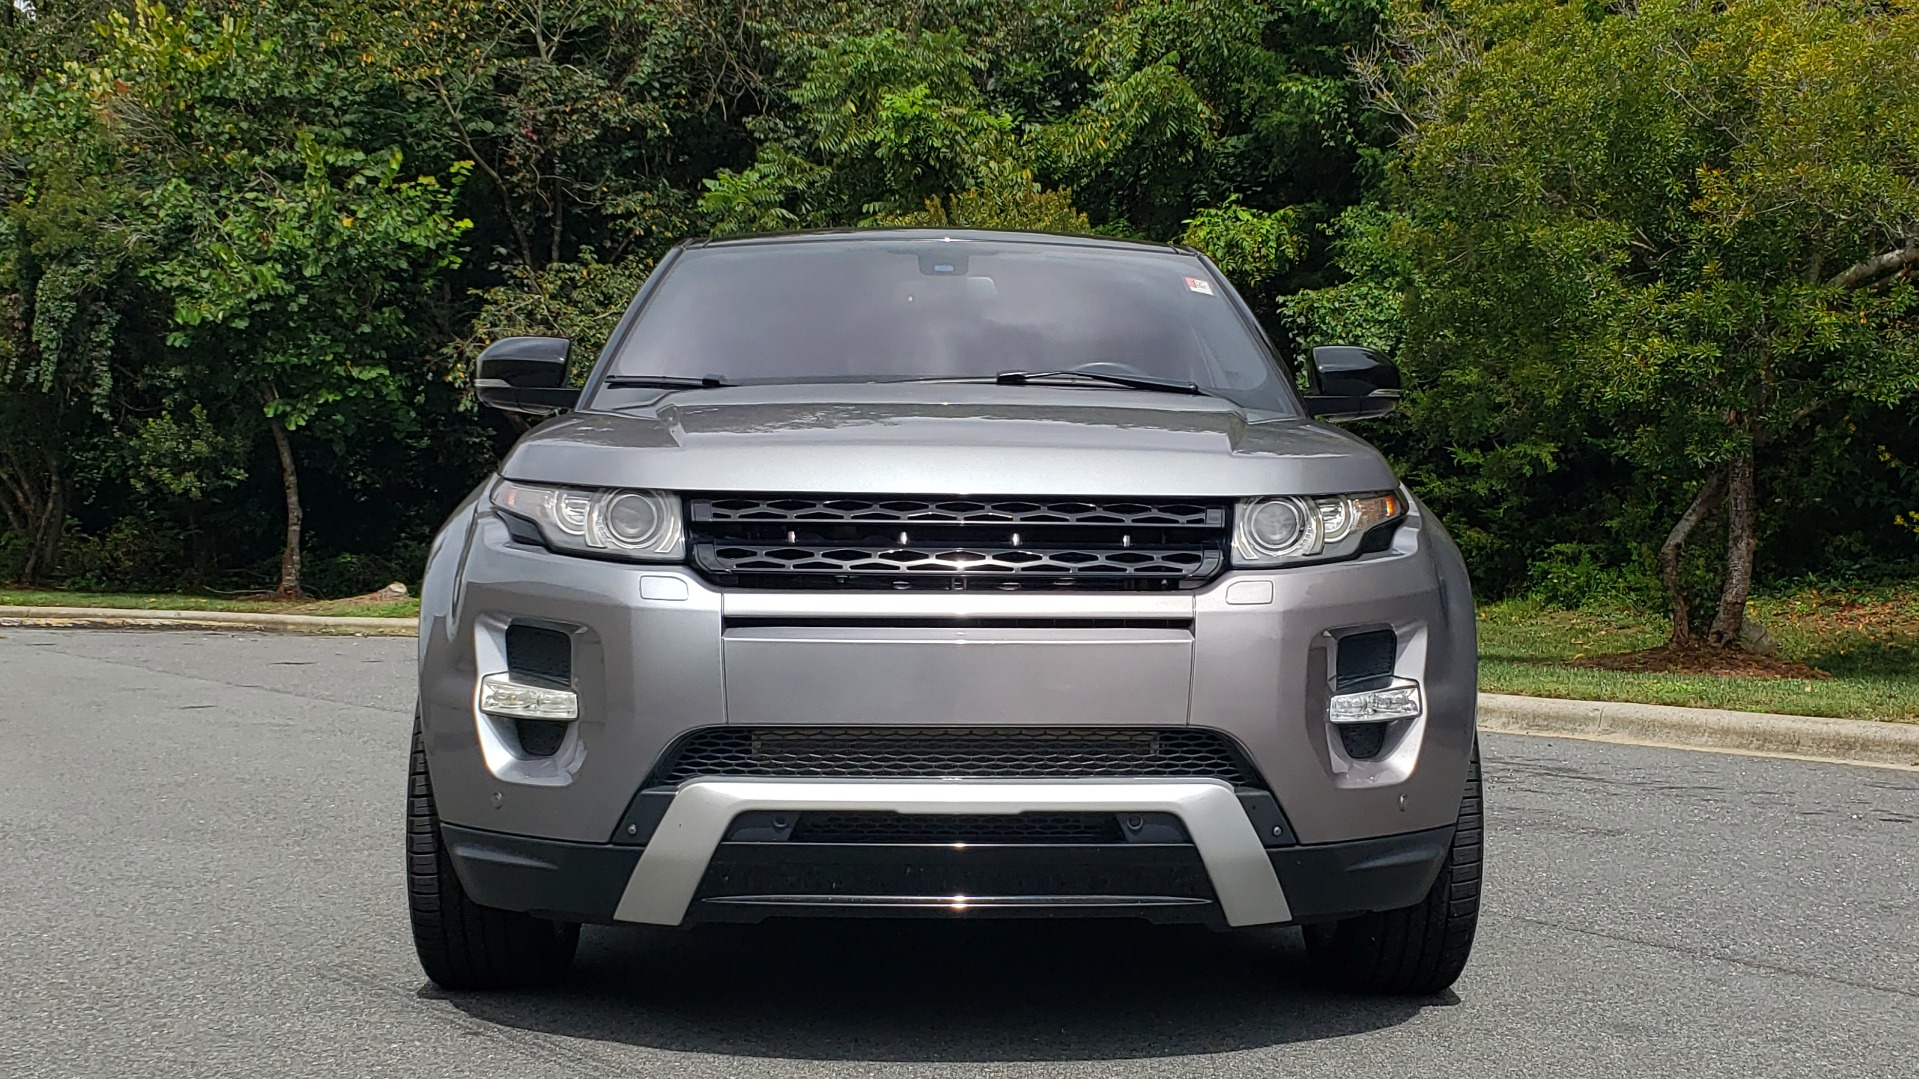 Used 2013 Land Rover RANGE ROVER EVOQUE DYNAMIC PREMIUM / NAV / PANO-ROOF / BLIND SPOT / REARVIEW for sale Sold at Formula Imports in Charlotte NC 28227 25